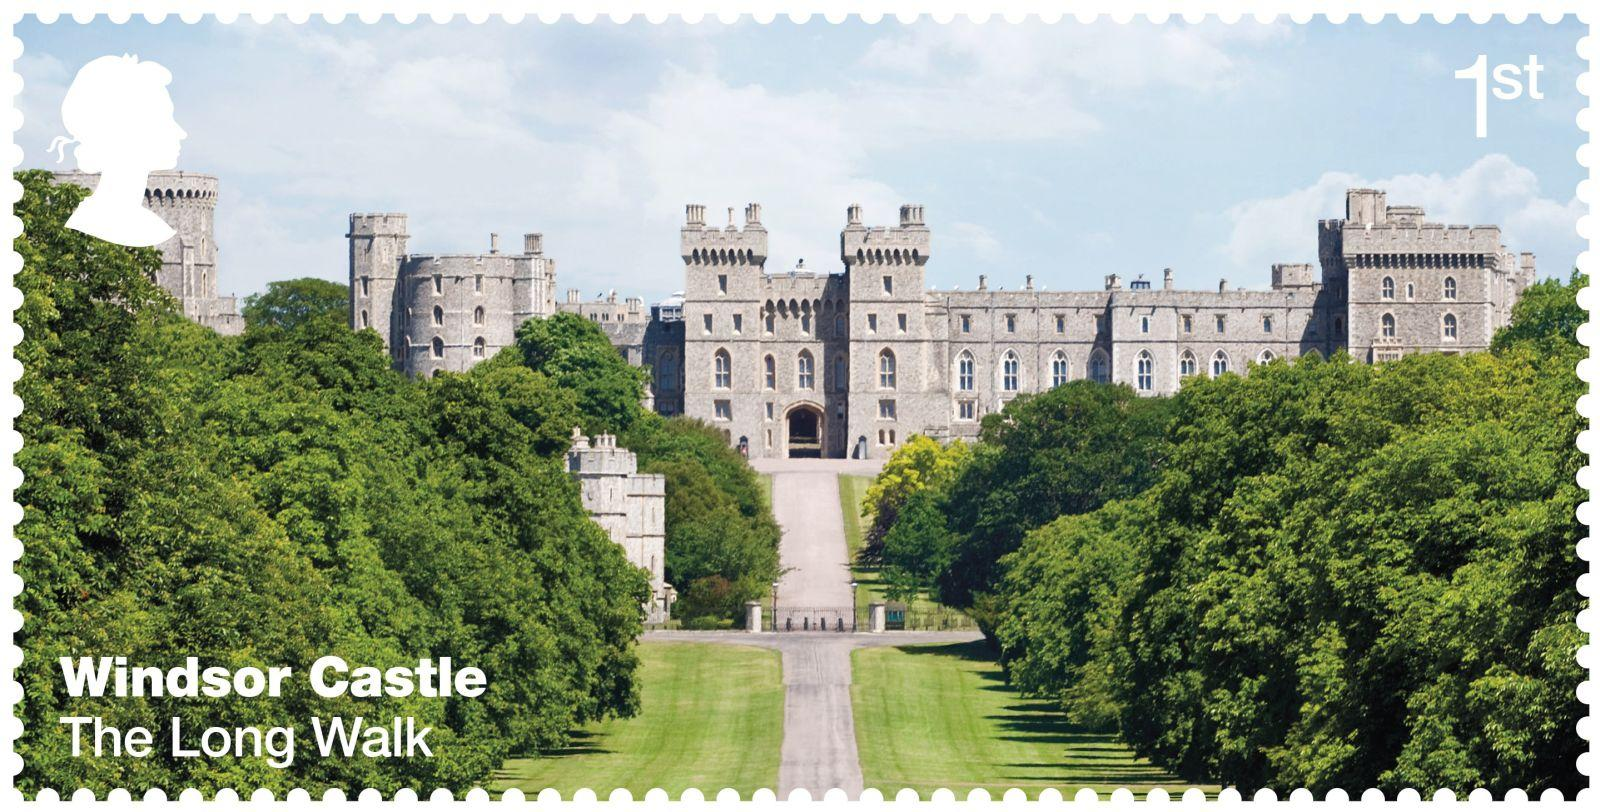 Windsor_Castle_on_Royal_Mail_stamps05